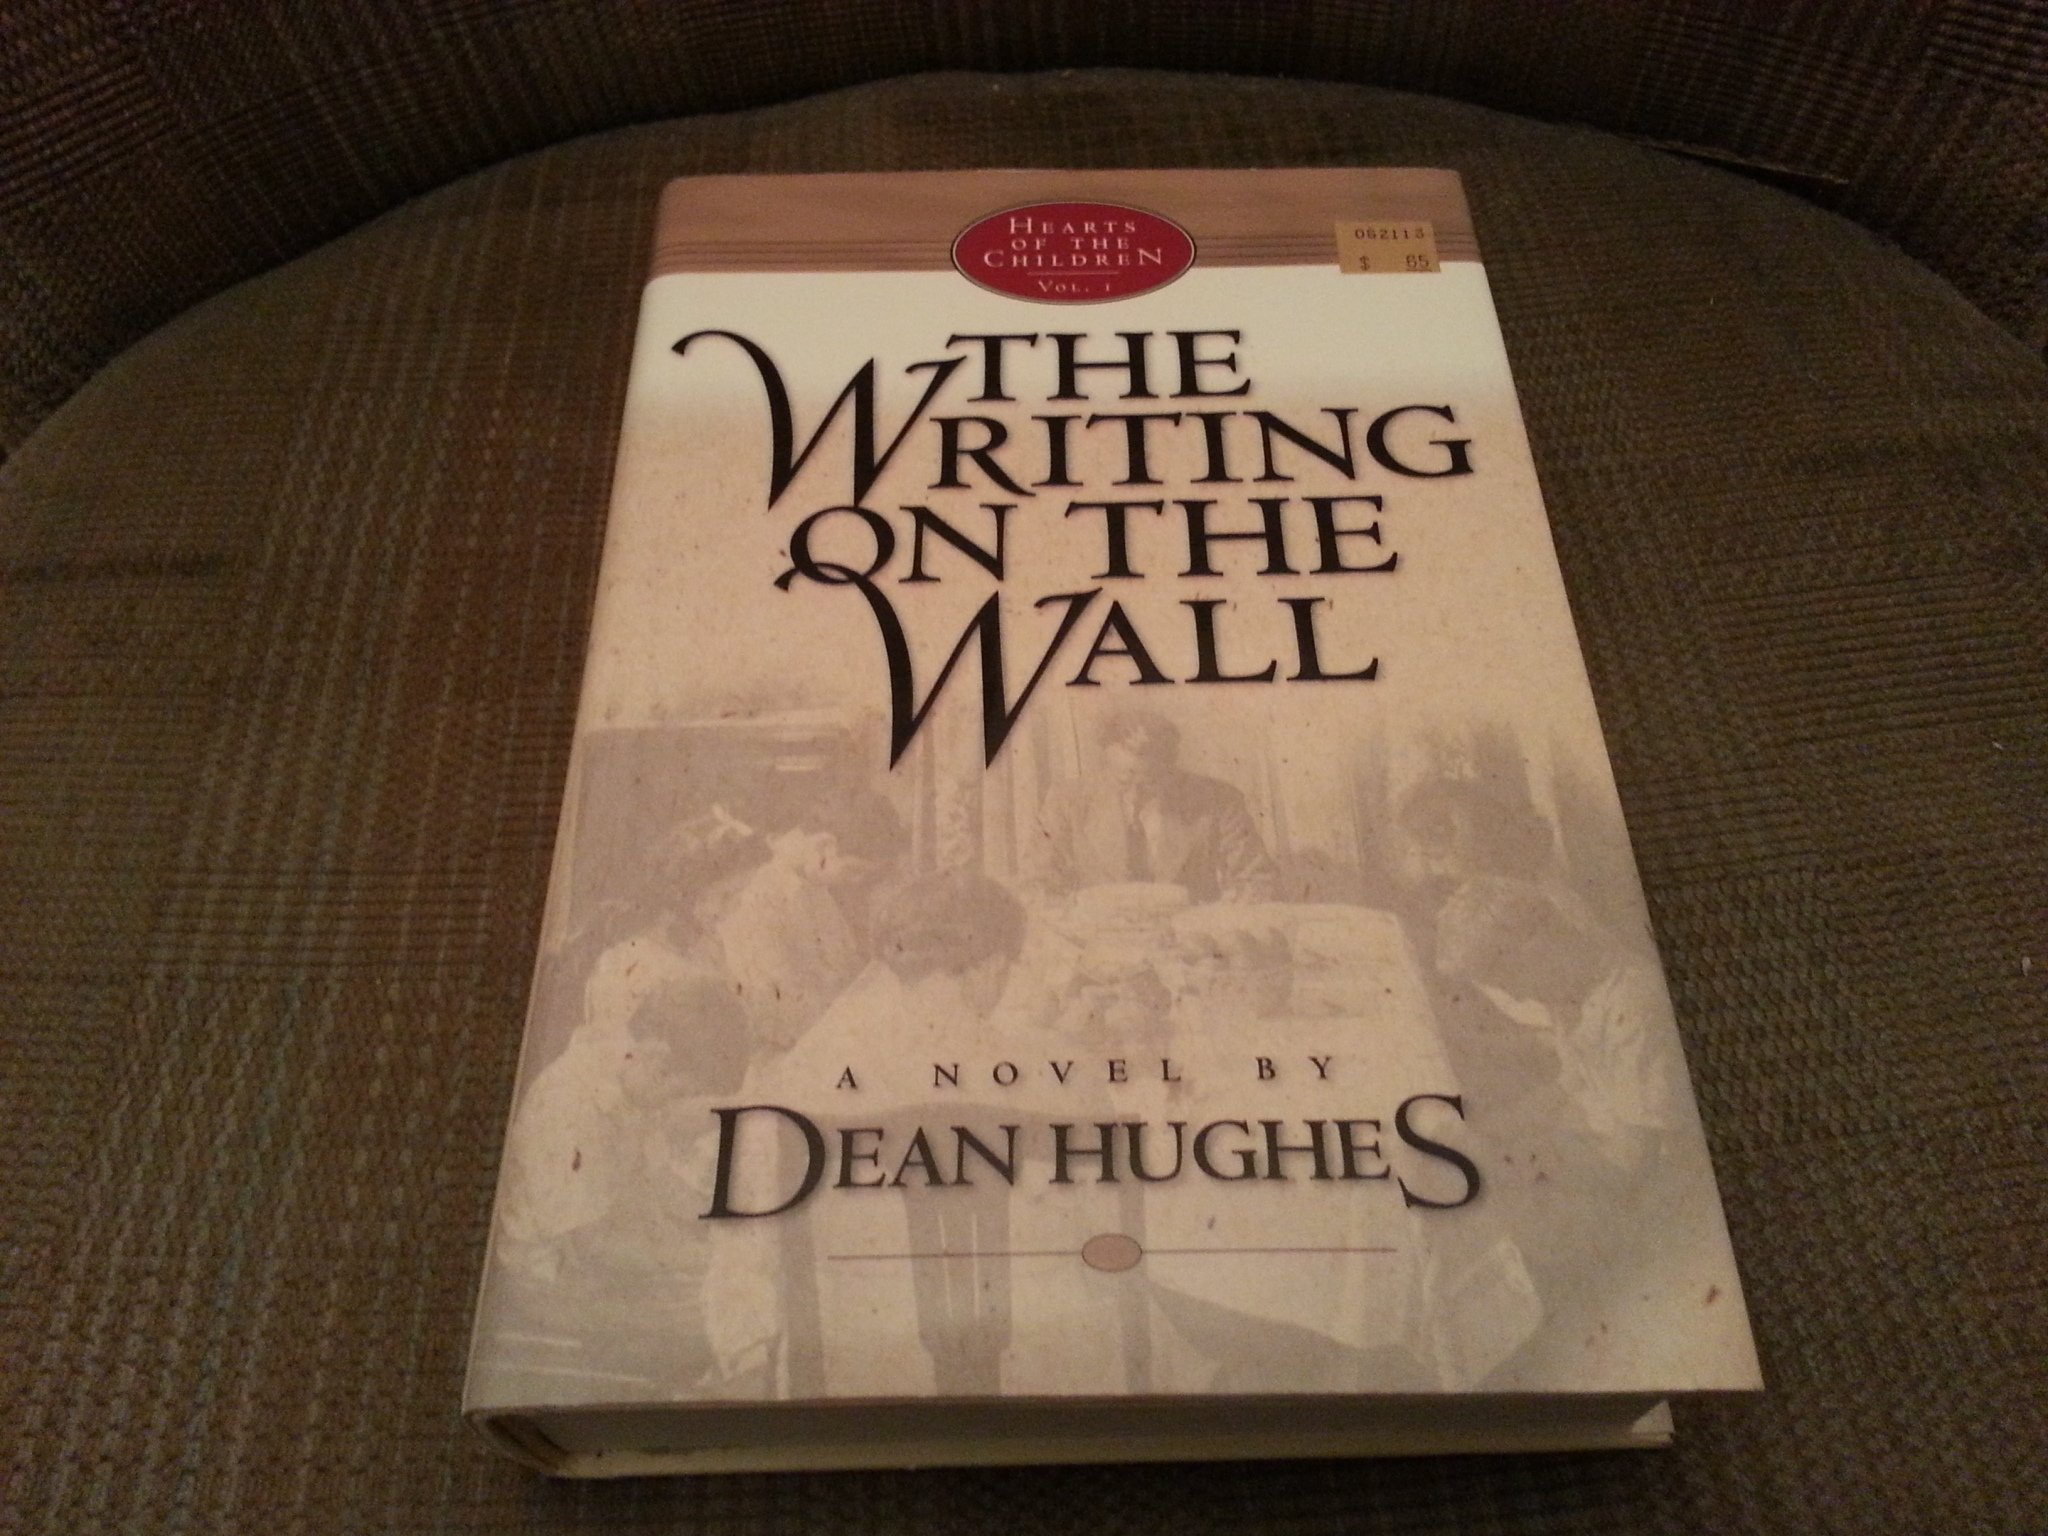 Hearts of the Children: The Writing on the Wall Vol 1 Hardcover By Dean Hughes 2001 ebook